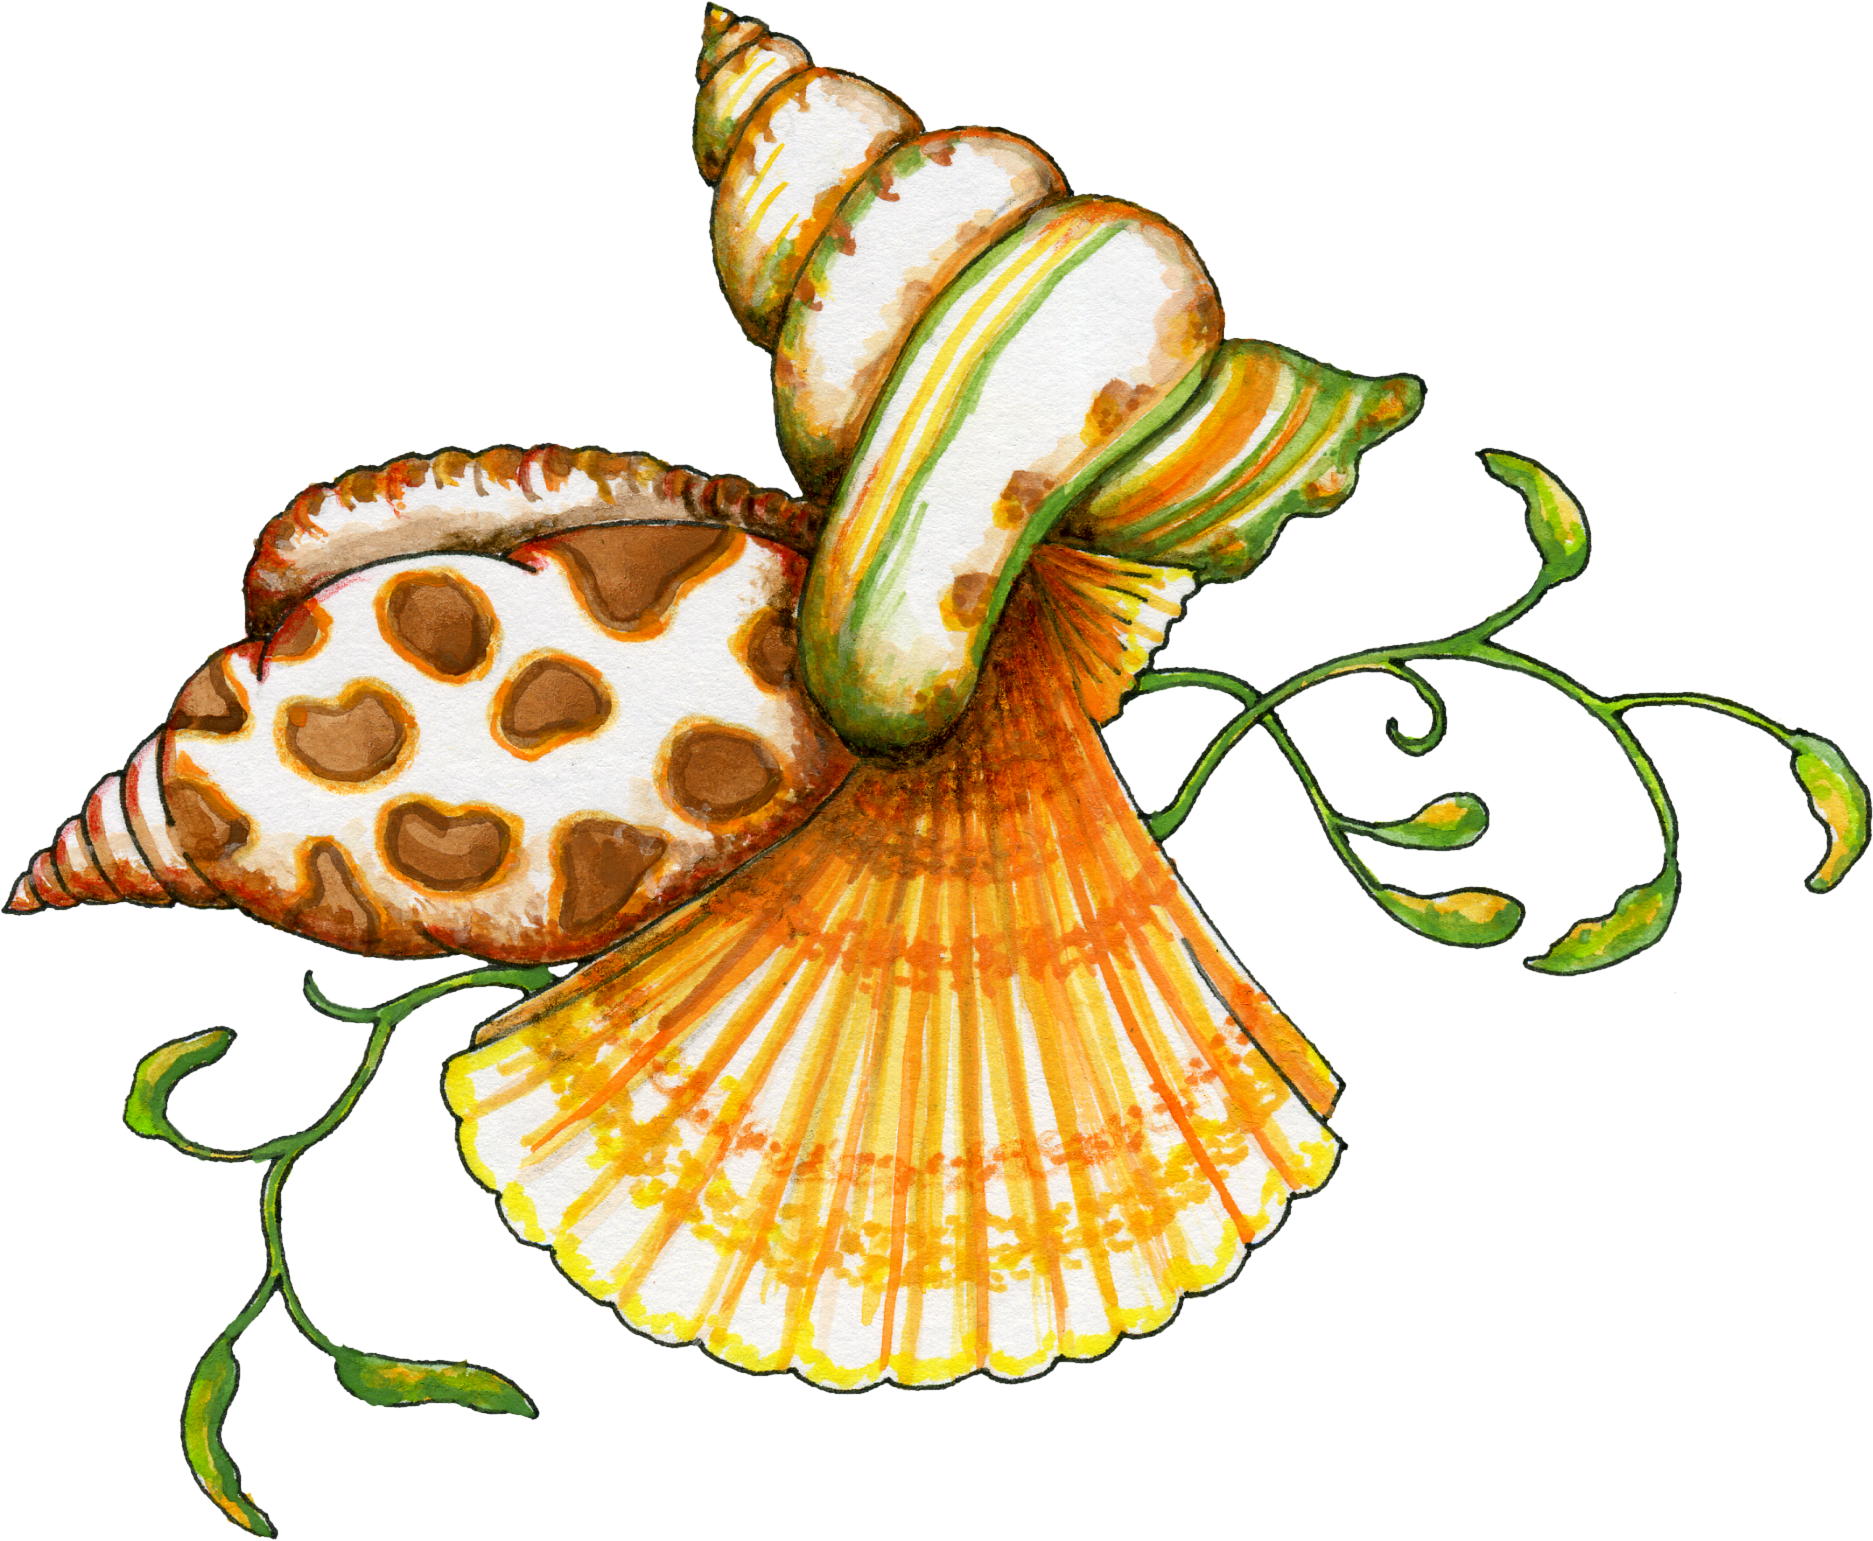 Sea shells star fishon beach clipart png transparent library Free Transparent PNG files and Paint Shop Pro Tubes | Pinterest ... png transparent library